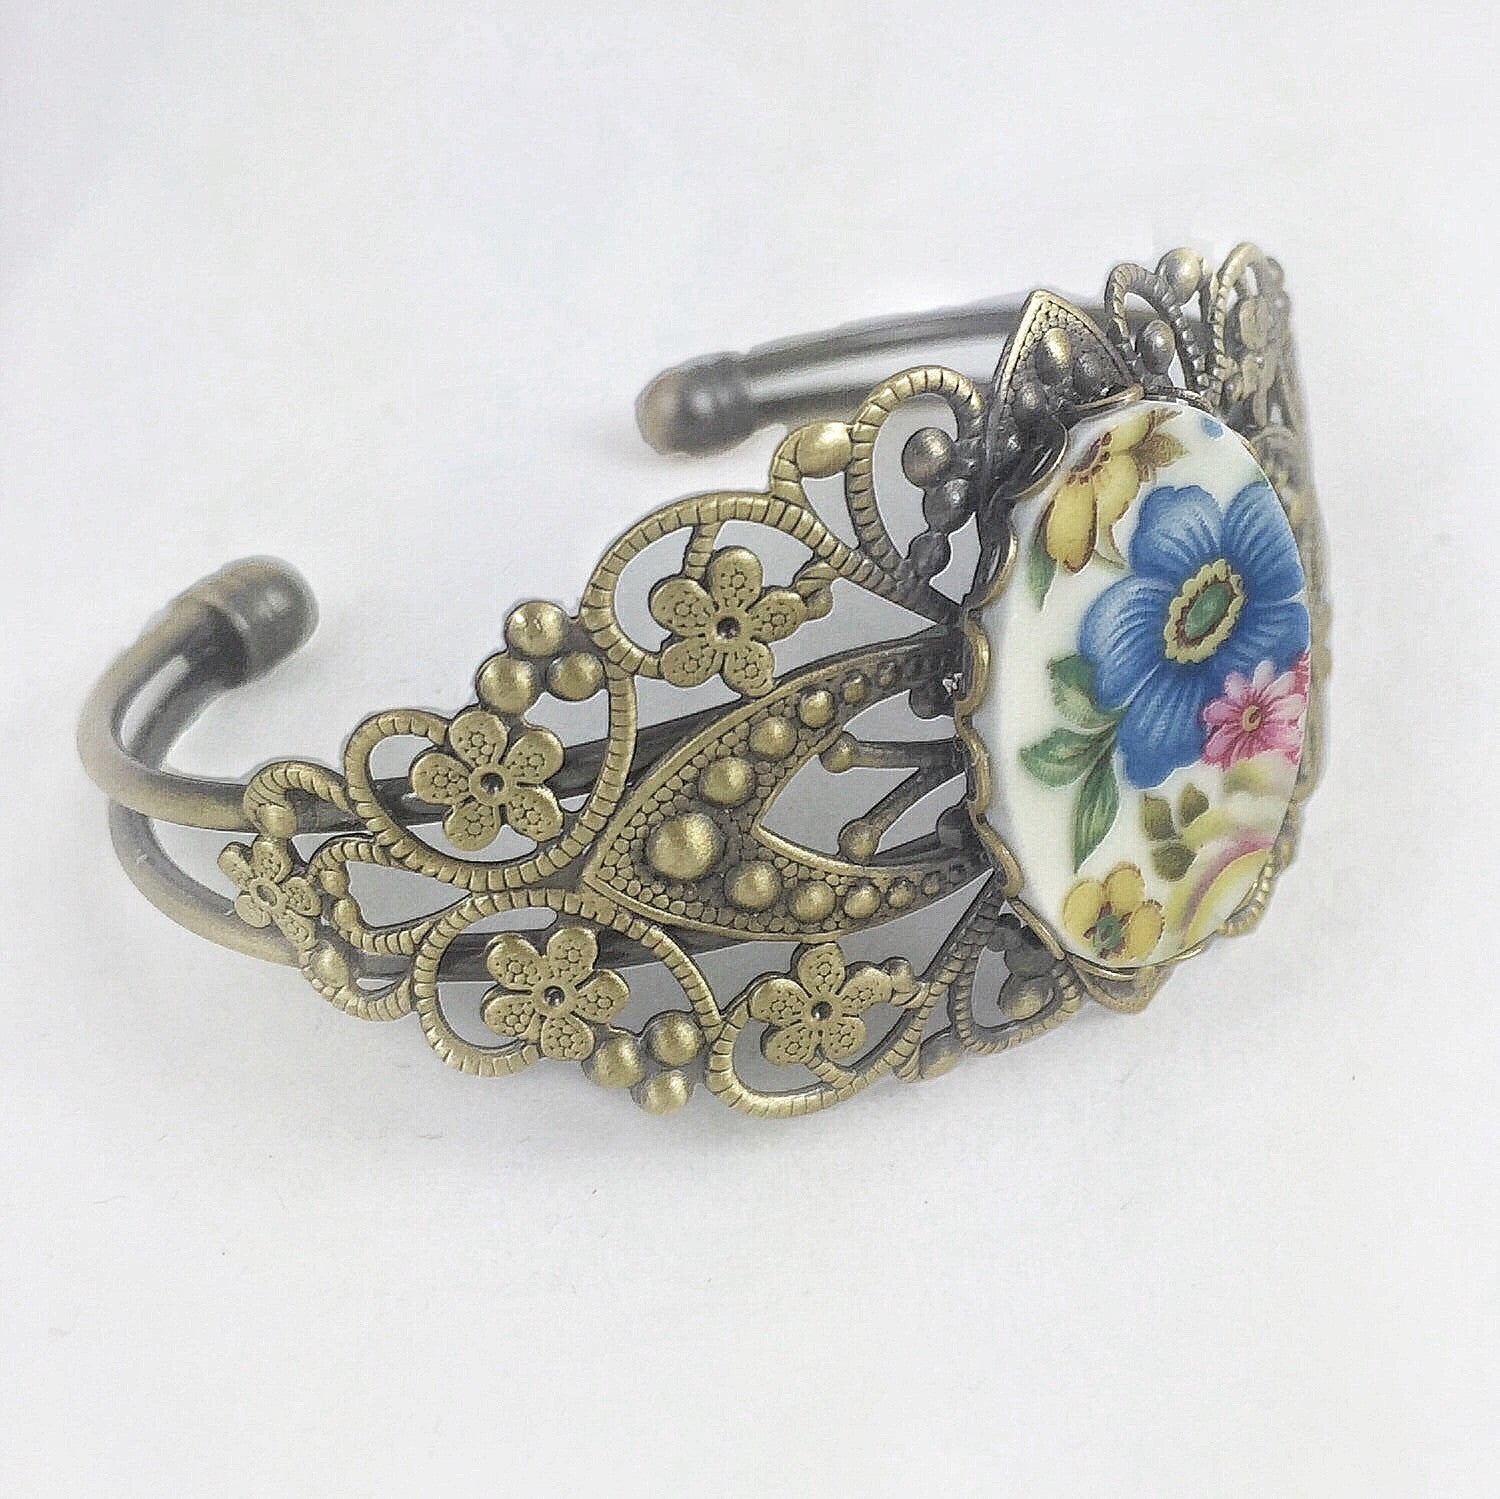 Broken China Jewelry Bracelet - Brass Flower Cuff Main image